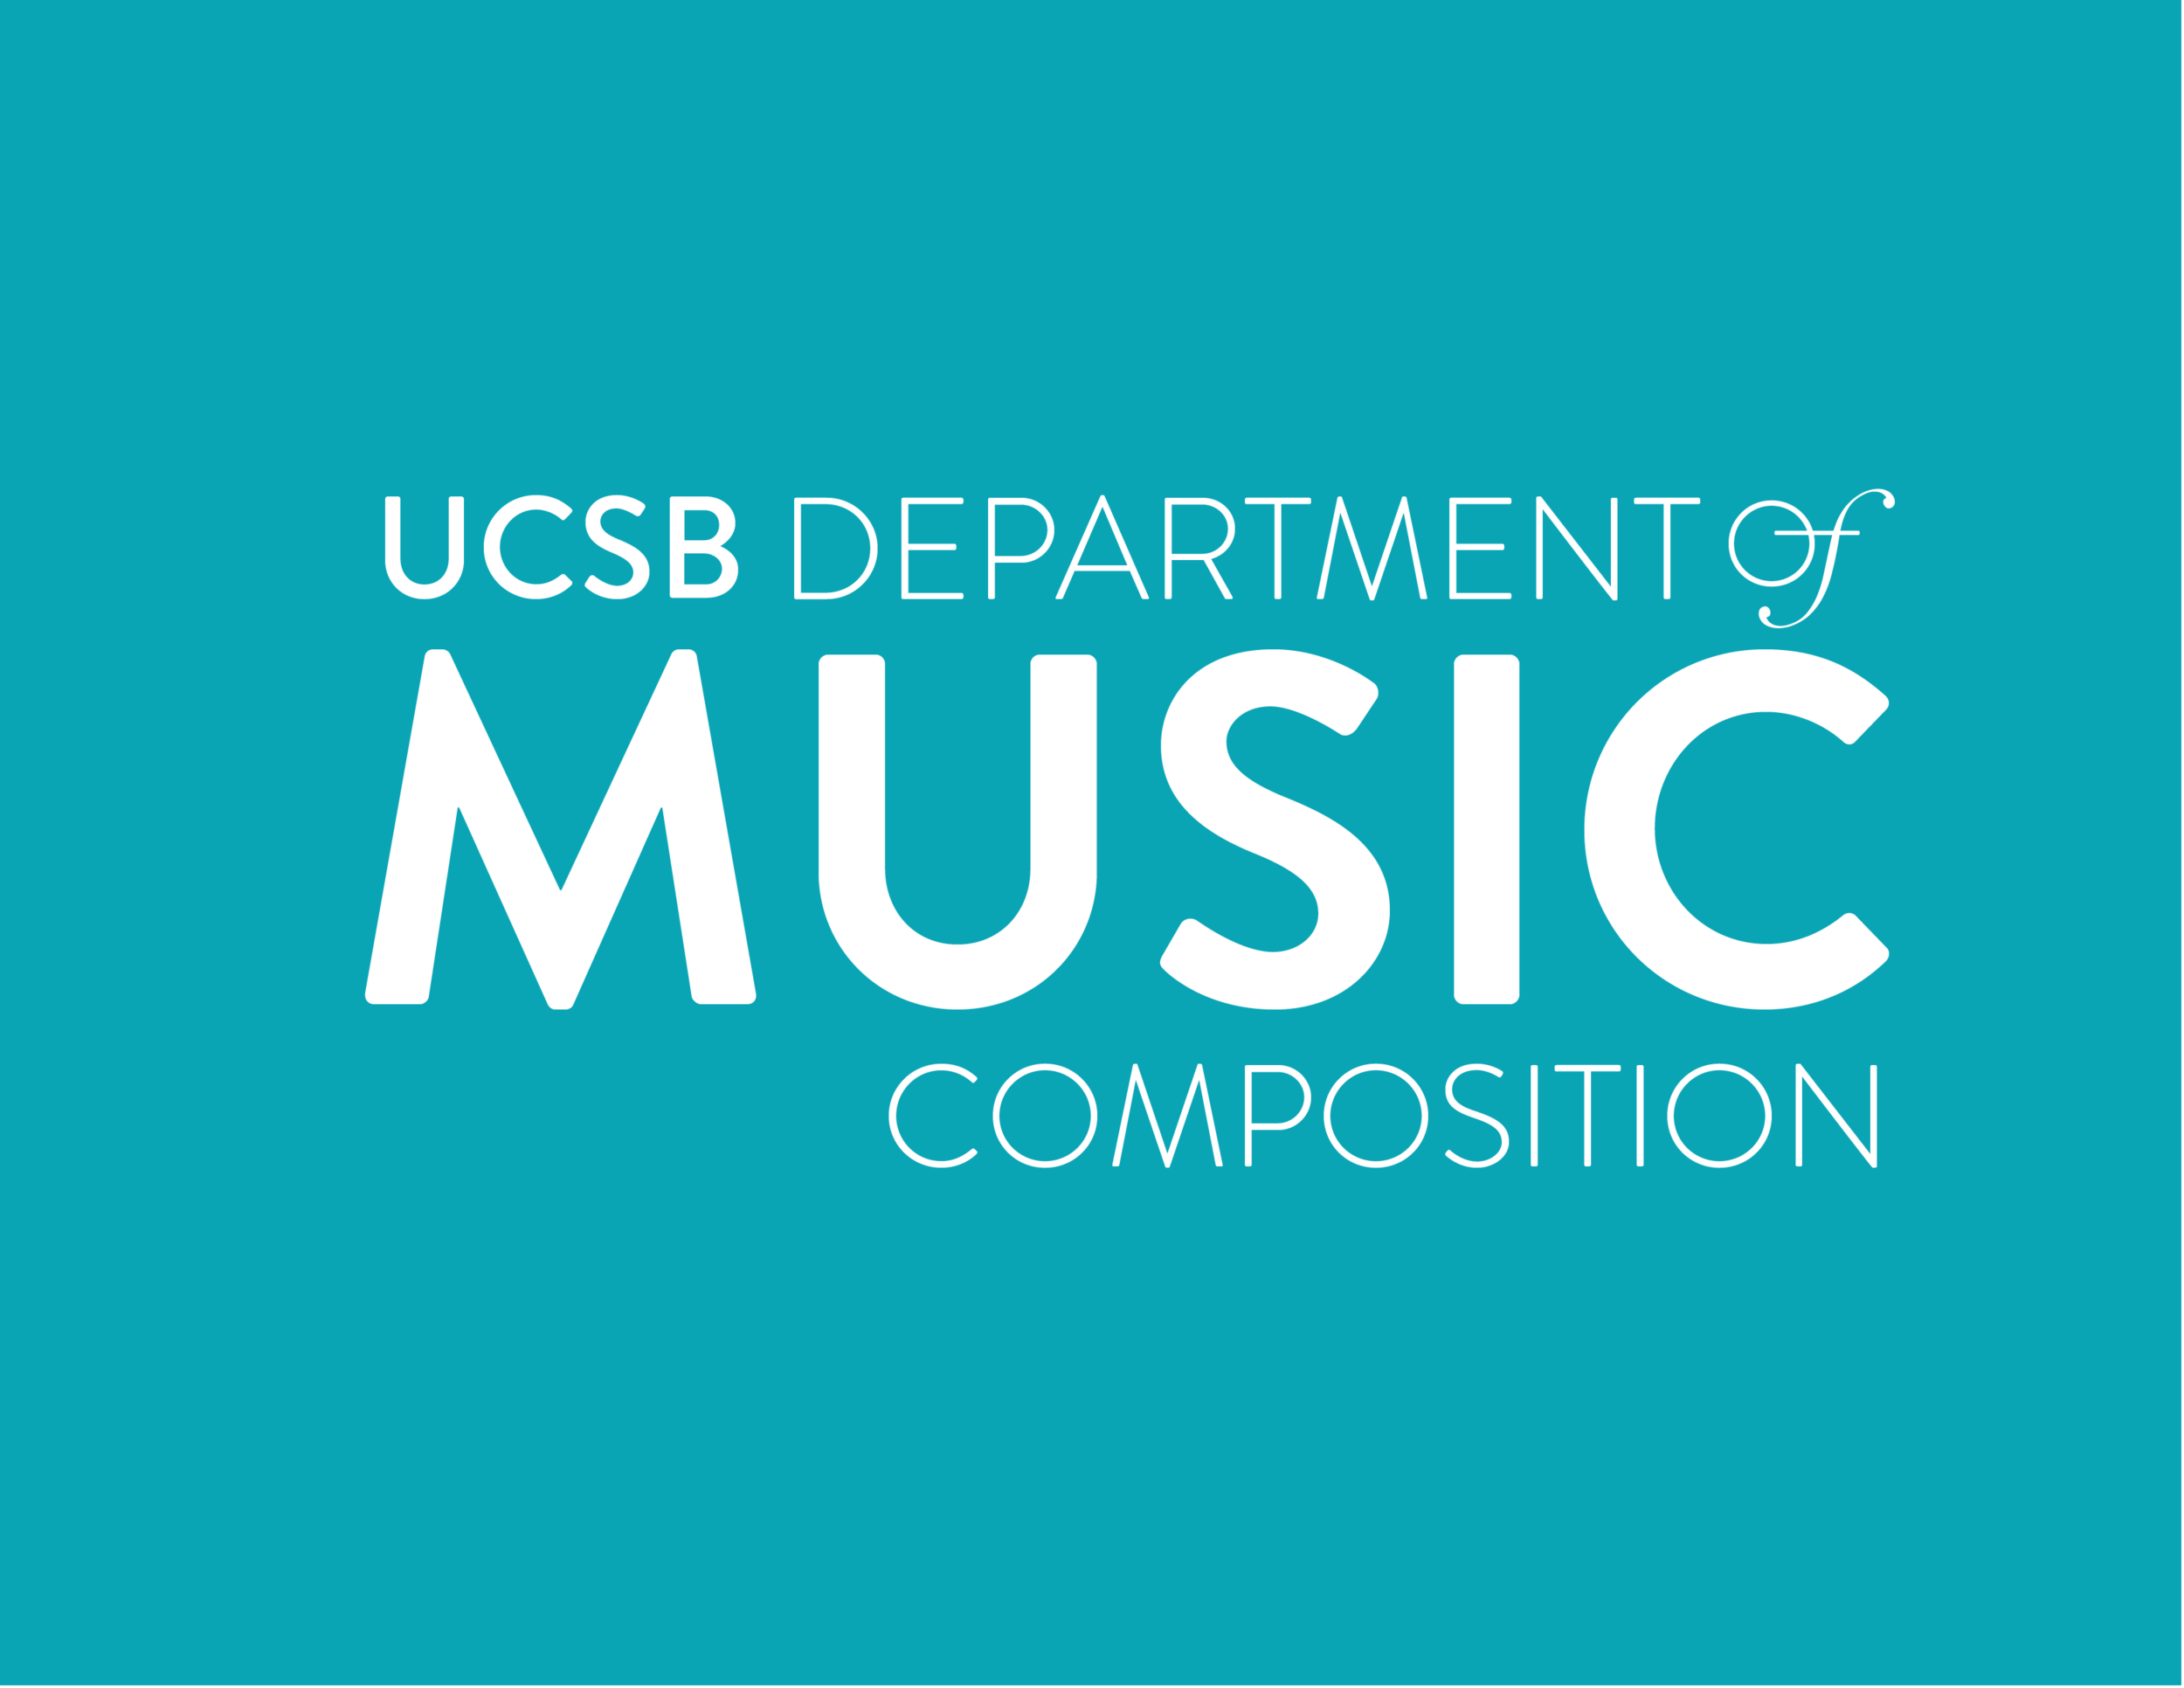 ucsb guidelines new logo and font use FINAL-13.png